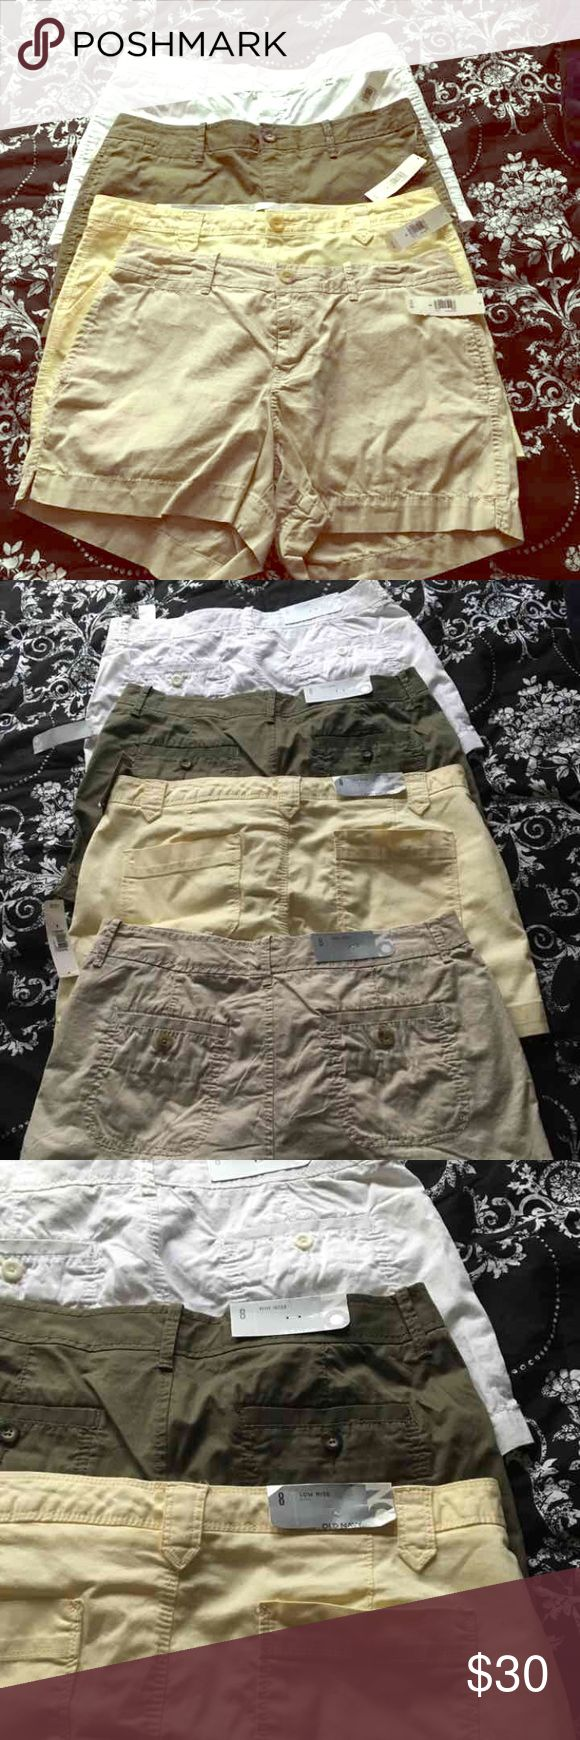 BUNDLE NWT shorts New with tags. Four pair of ladies shorts. All size 8. Old navy brand. Were $19.50 each. Green, white, yellow, tan. Short, shorts, women, ladies, girls, summer, spring. Bundle. Old Navy Shorts